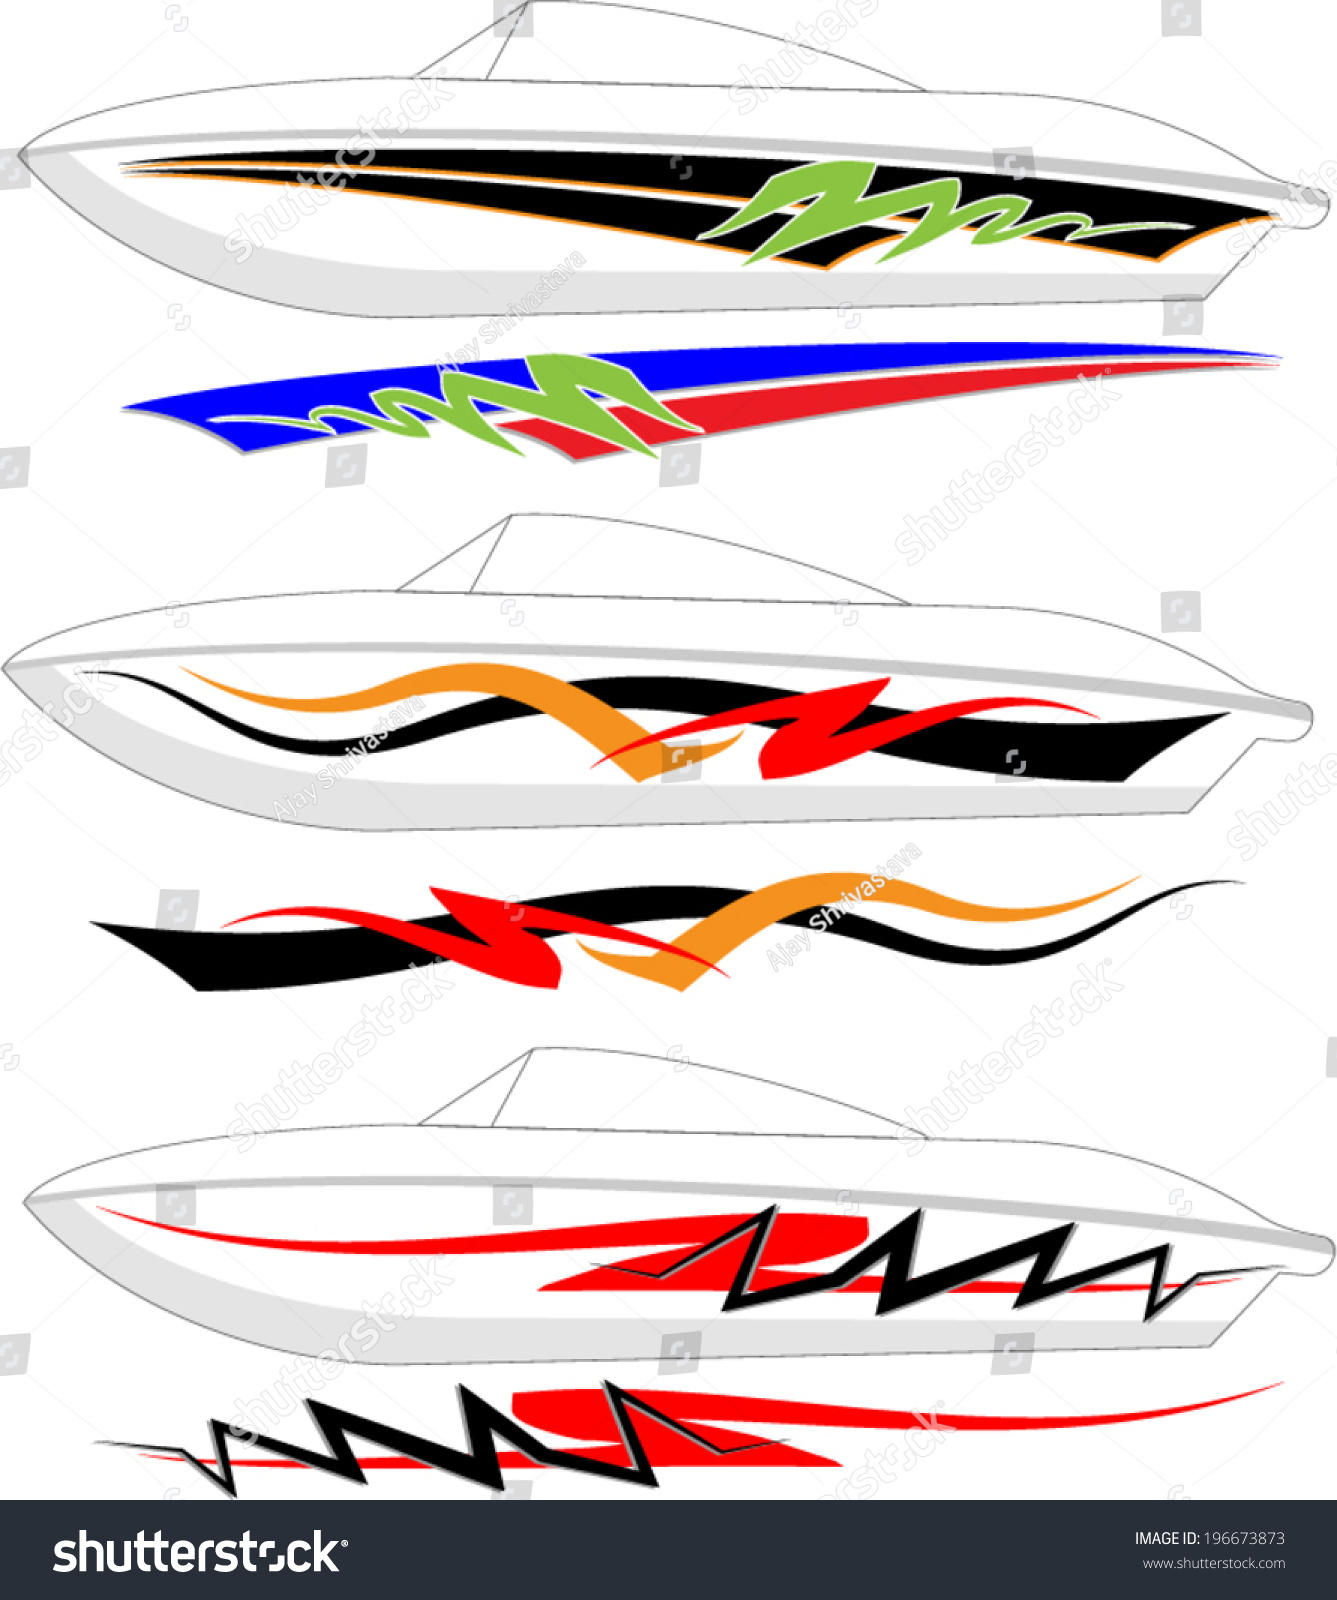 Emejing Boat Graphics Designs Ideas Gallery Design And